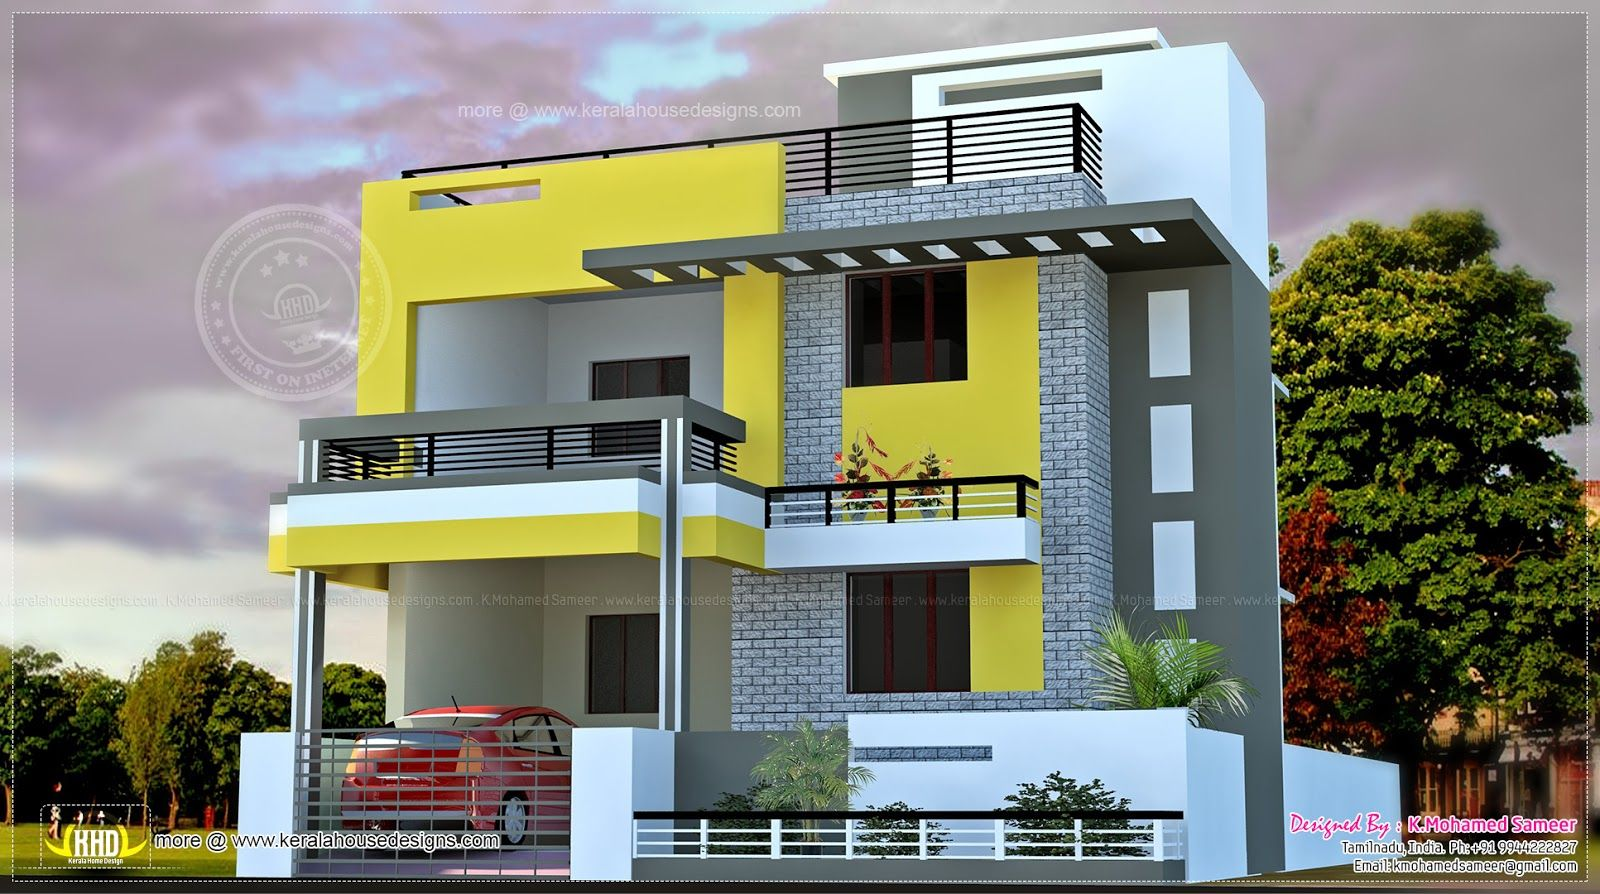 Elevations of residential buildings in indian photo Indian house front design photo